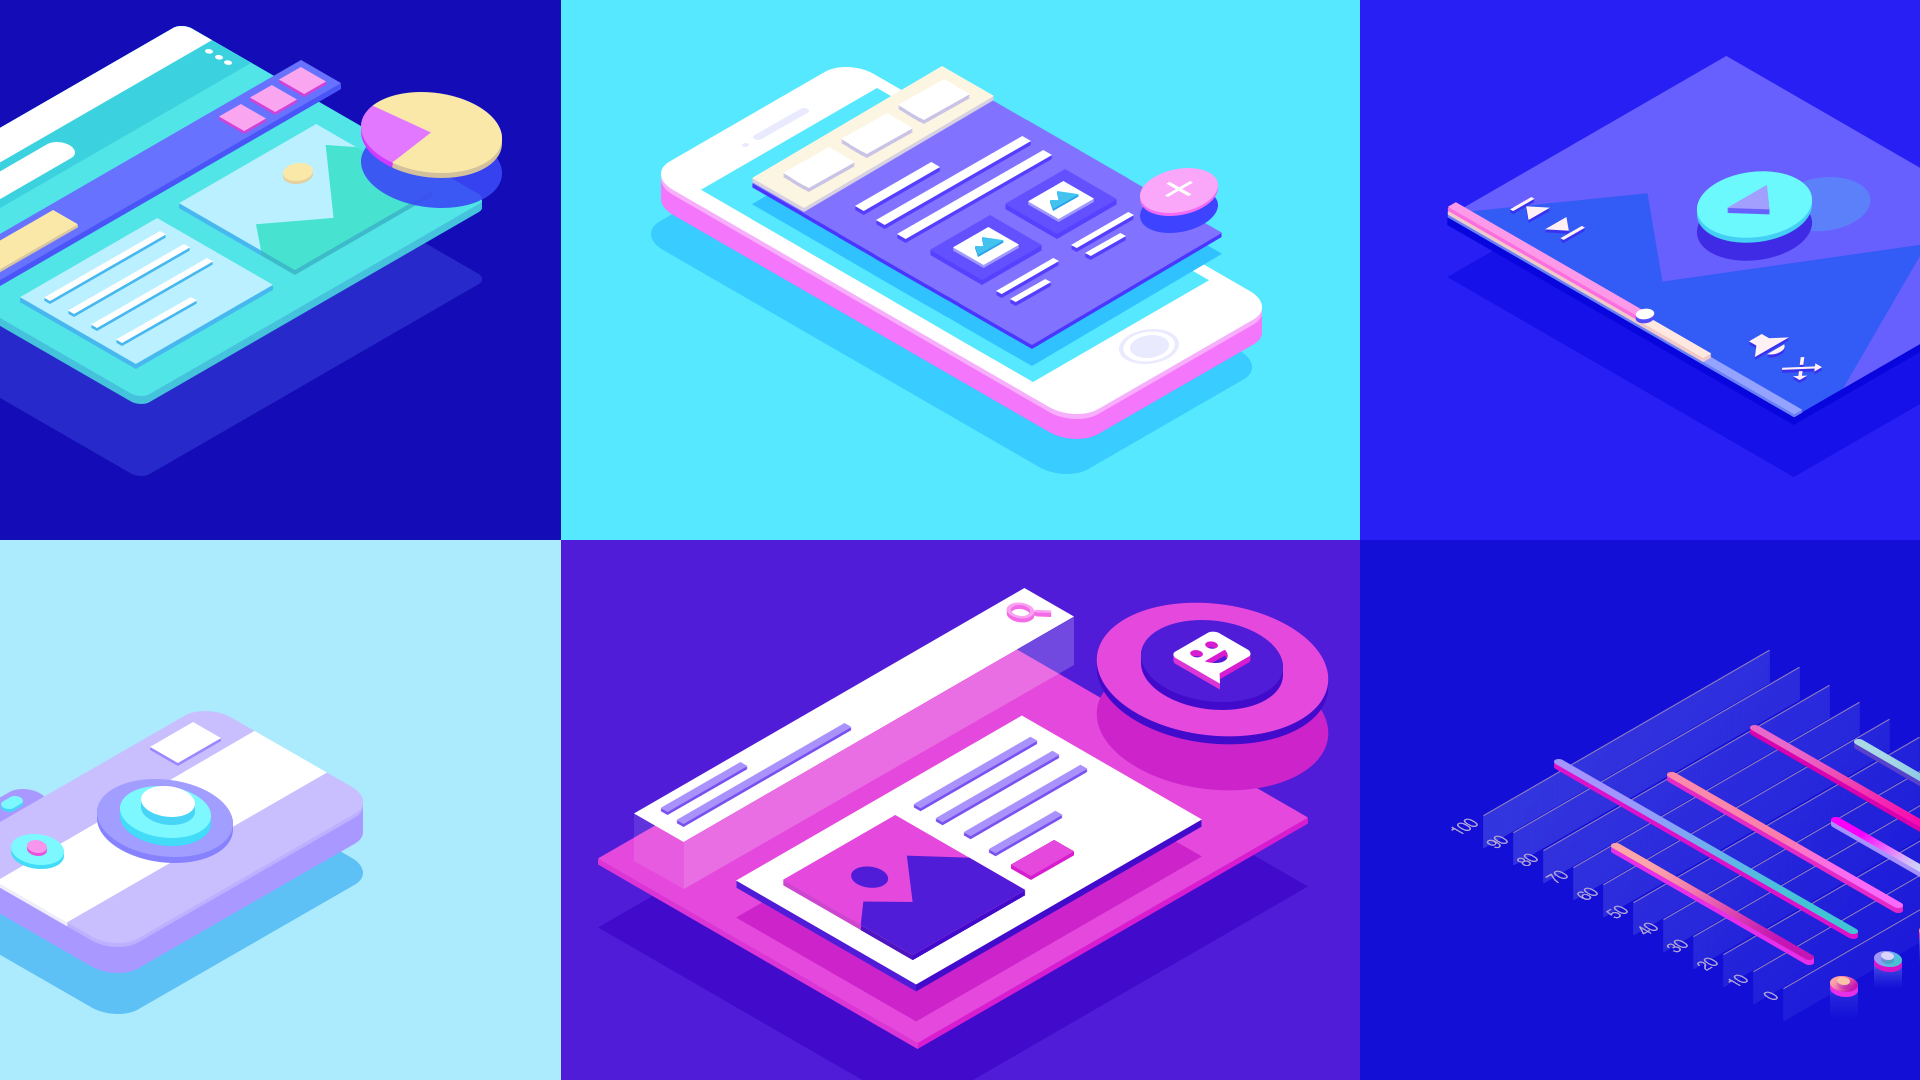 Creating Isometric Illustrations—Made Simple with the Geometric Technique